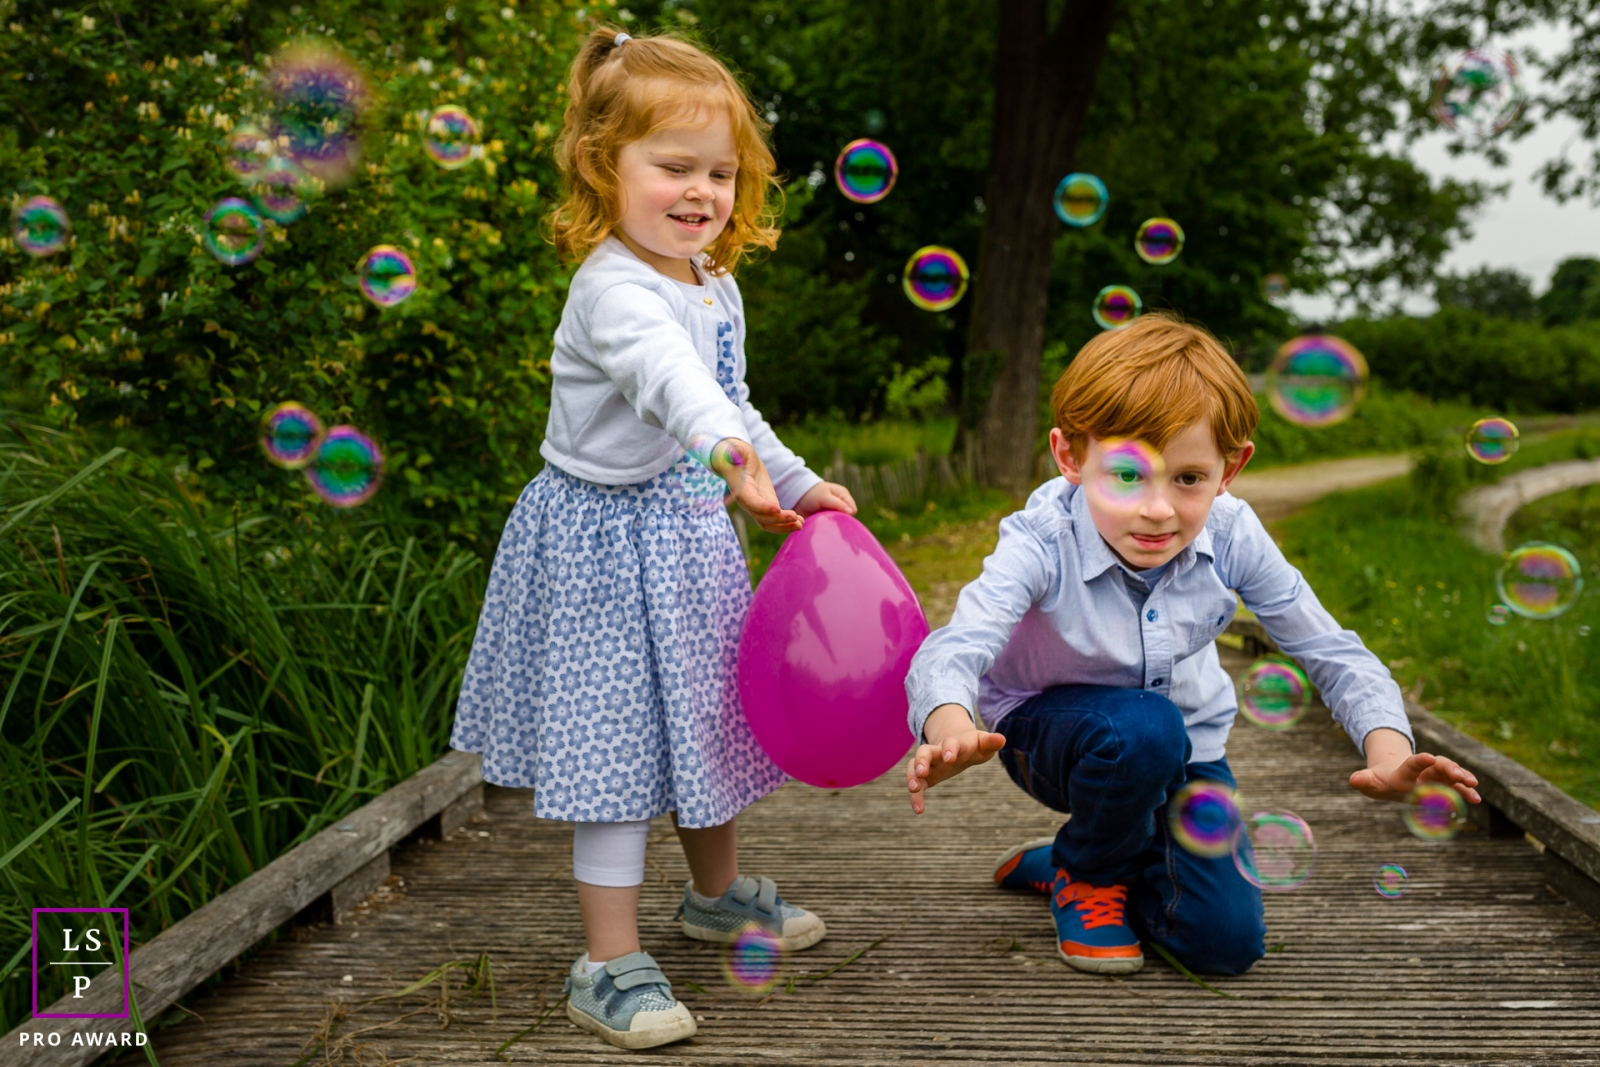 Family Portraits in Ile-de-France   Lifestyle Photography Session: Brother and sister catching soap bubbles